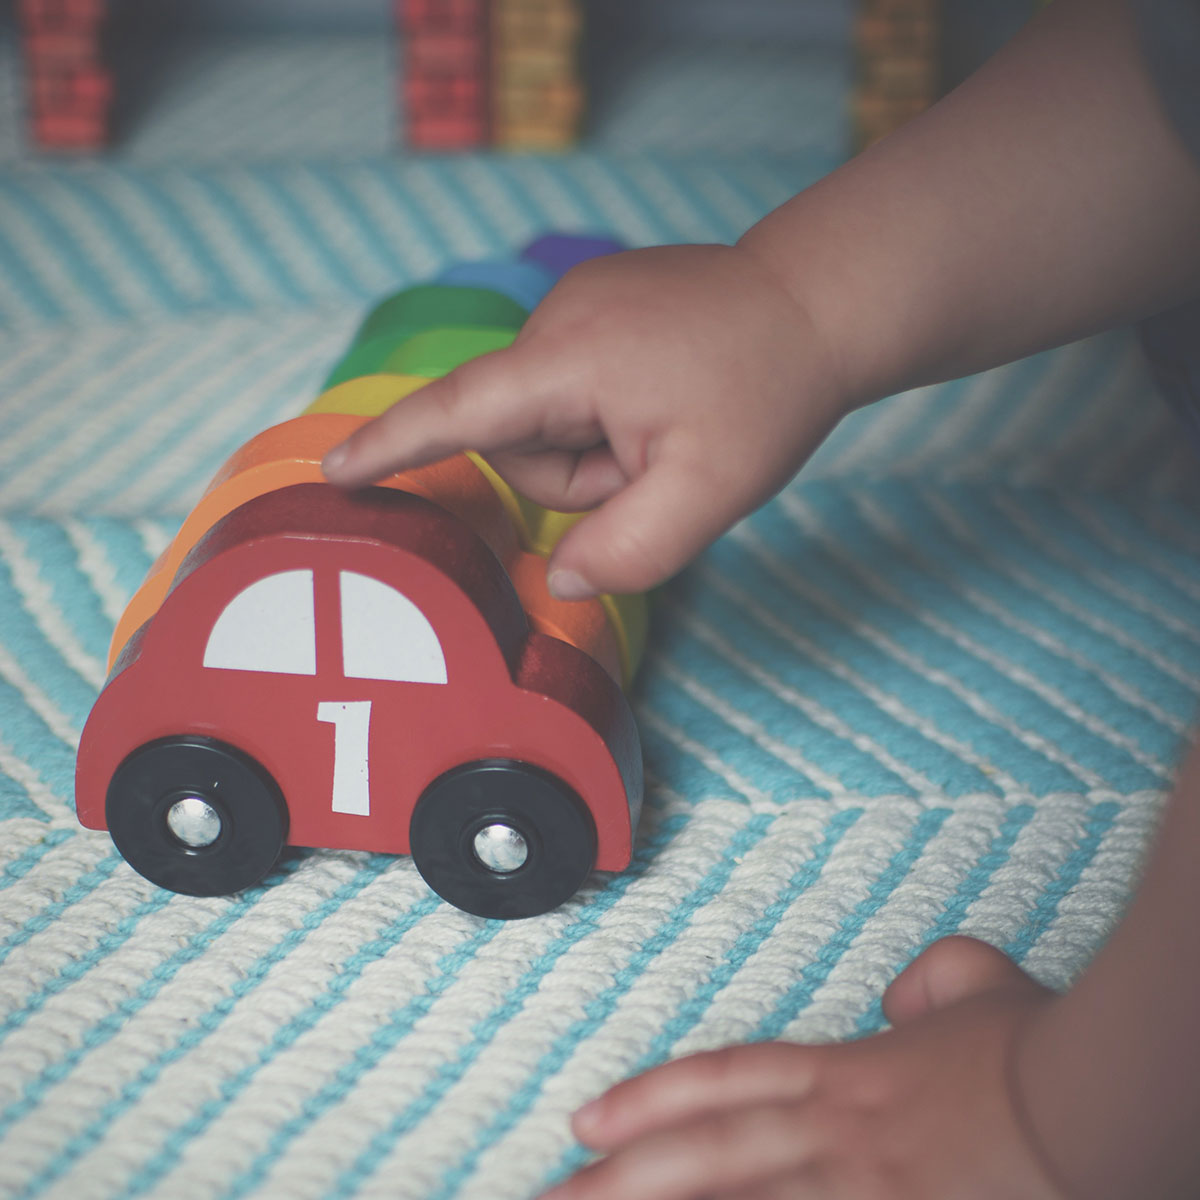 Our month in insta-snaps; May 2016 - Toddler playing with Melissa and Doug nesting rainbow cars and garages from Wicked Uncle toy website